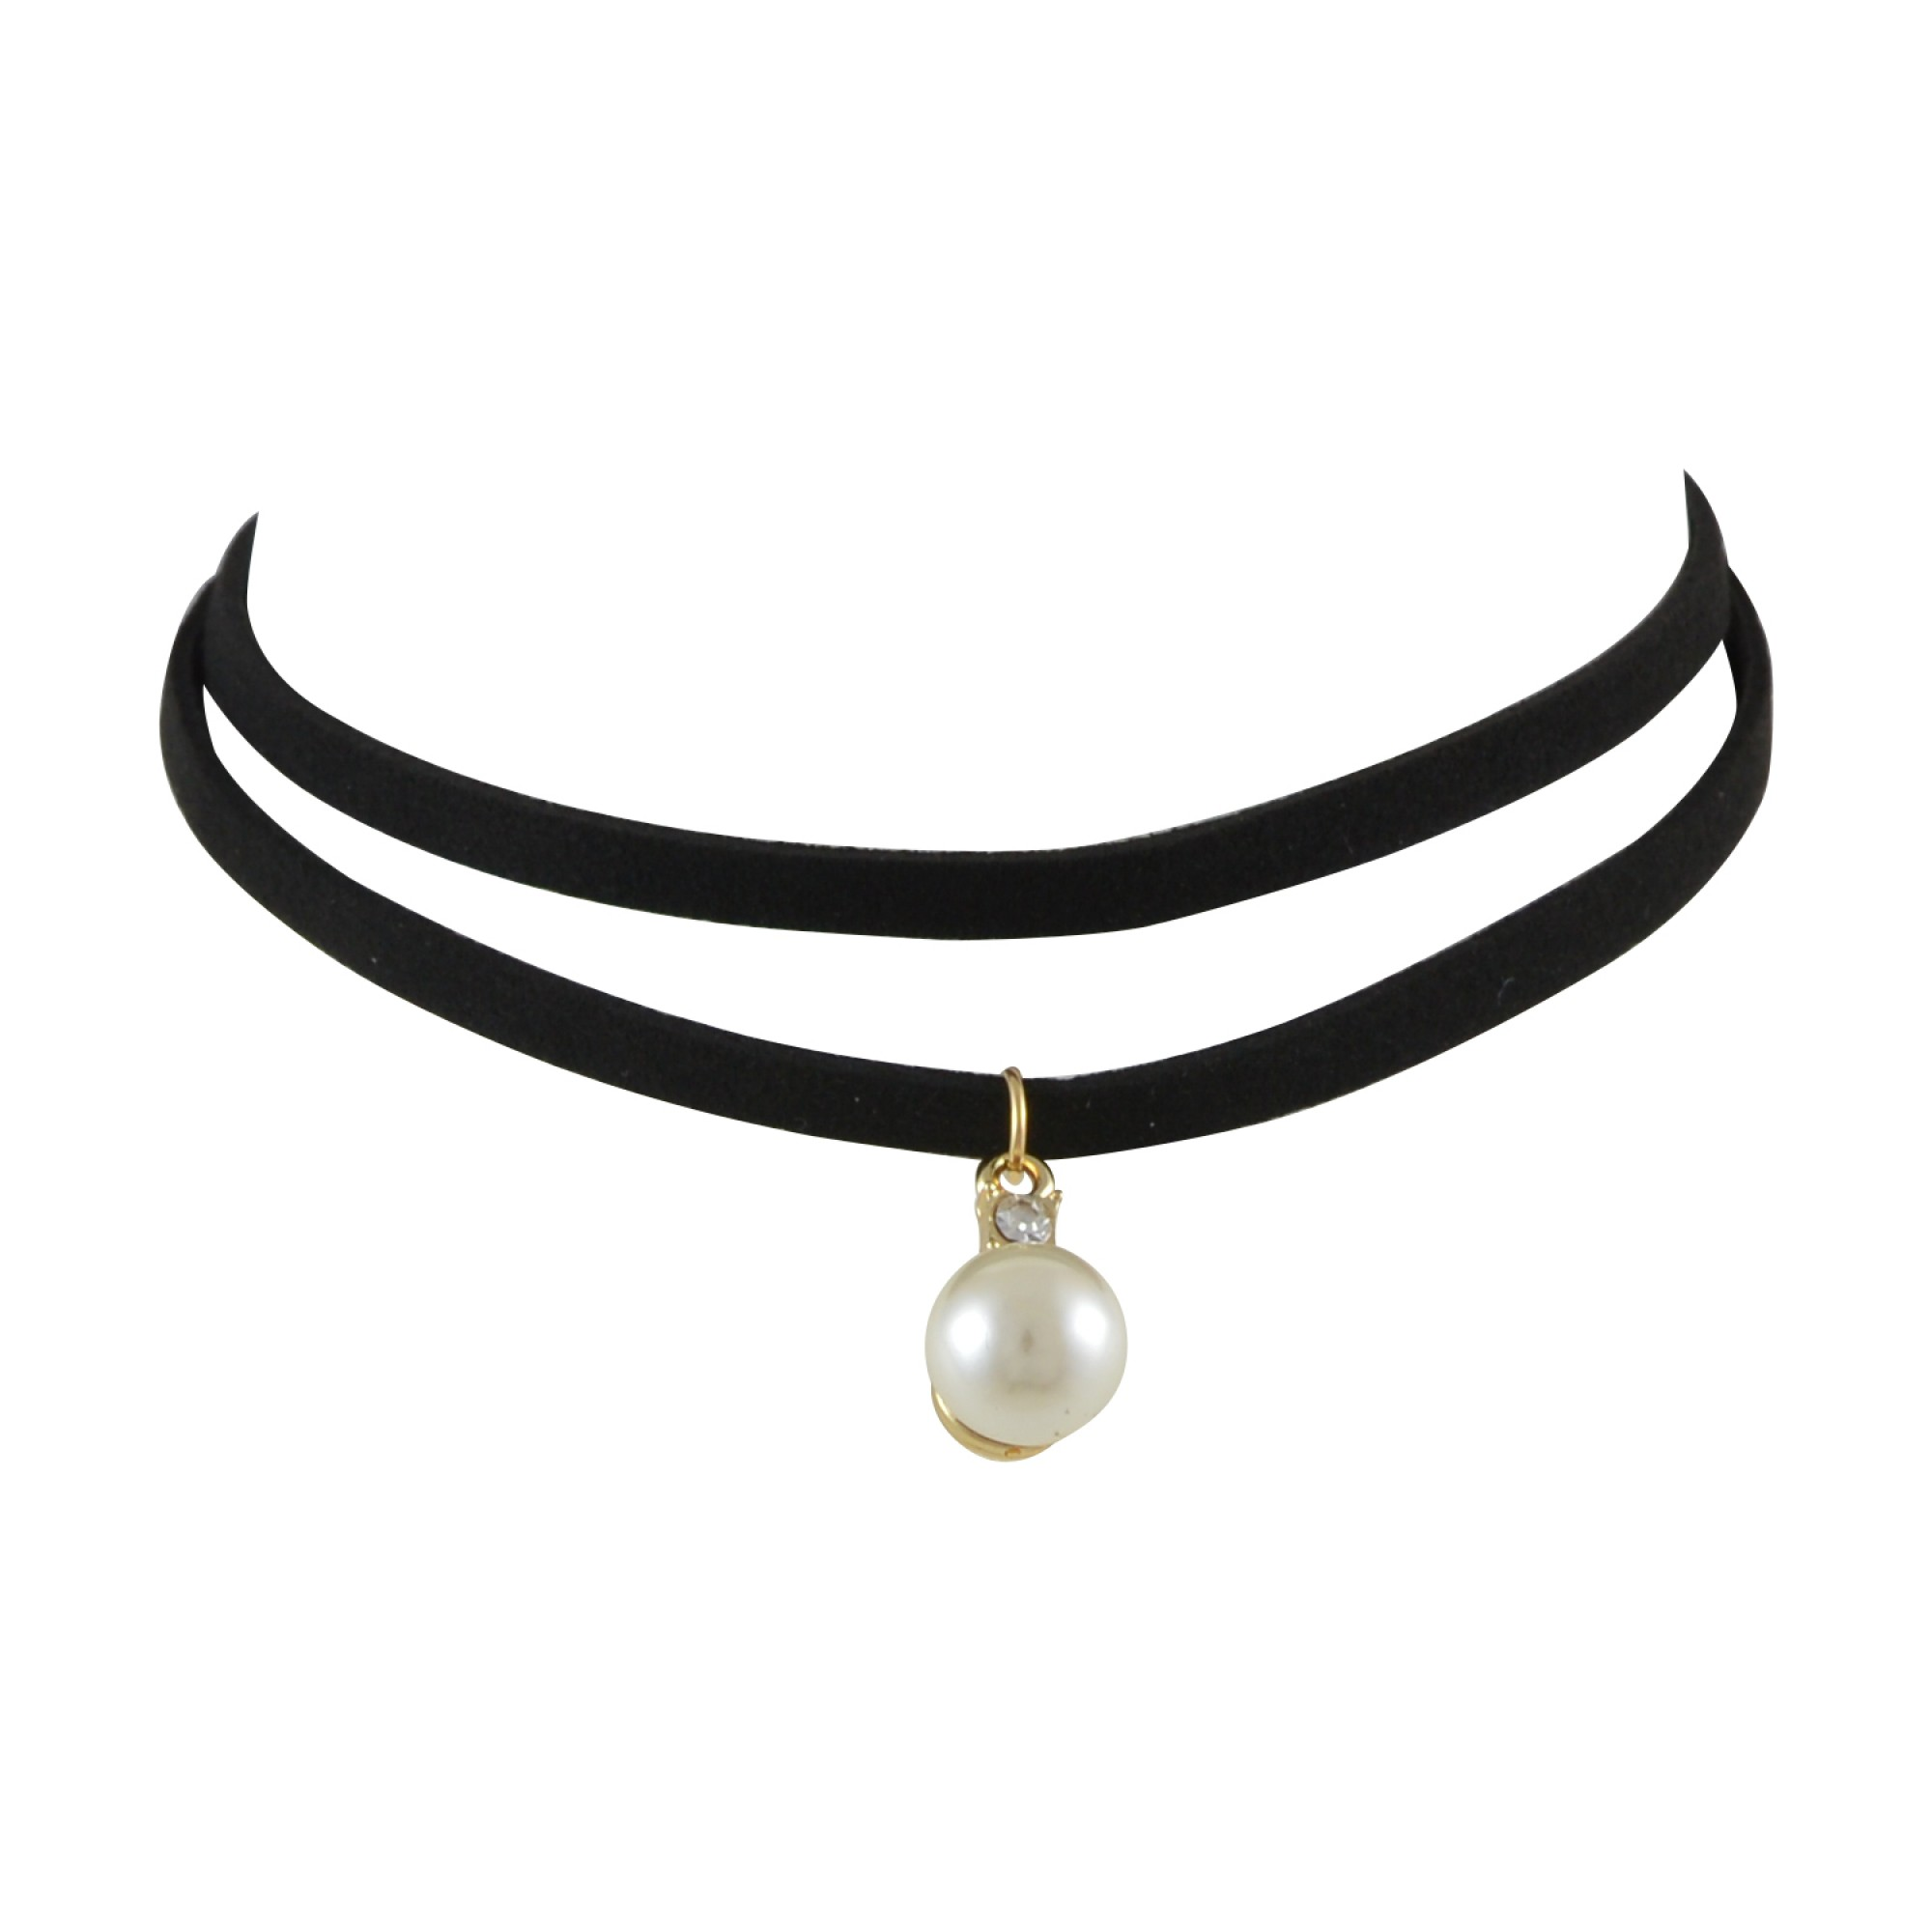 black necklace doublelayer peal charm gothic choker necklace for women - black HLZYNIE